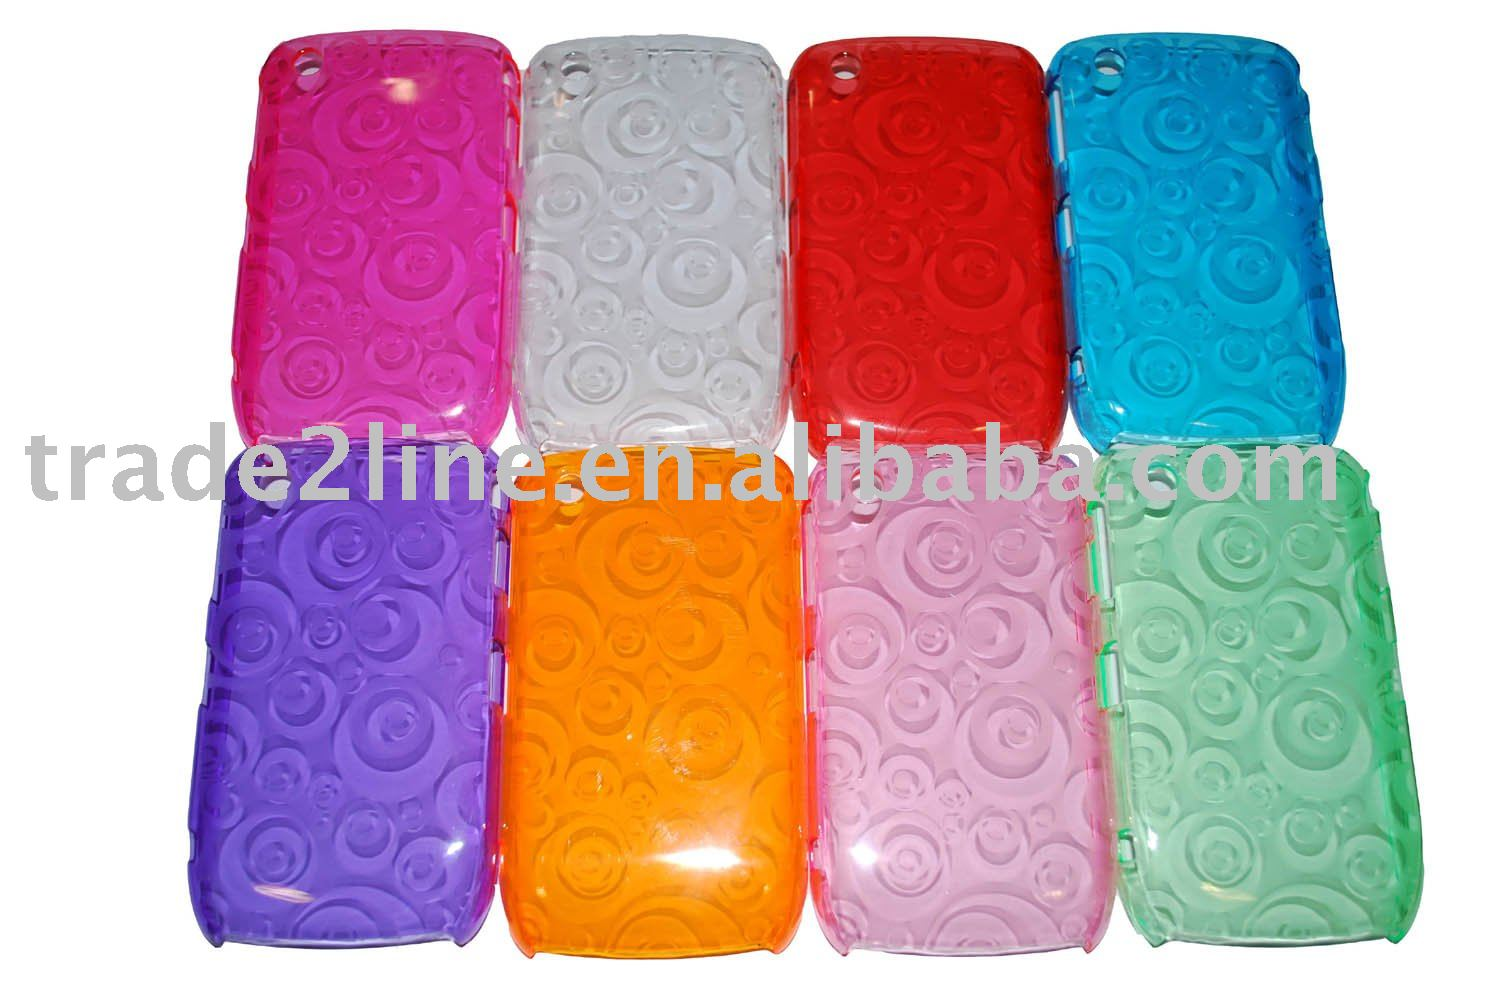 http://1.bp.blogspot.com/-3v8vMsPZwVM/TWPpx3nUEgI/AAAAAAAAABM/a5828wFQI_M/s1600/Accessories_for_BlackBerry_Special_back_cover_for_BlackBerry_8520.jpg